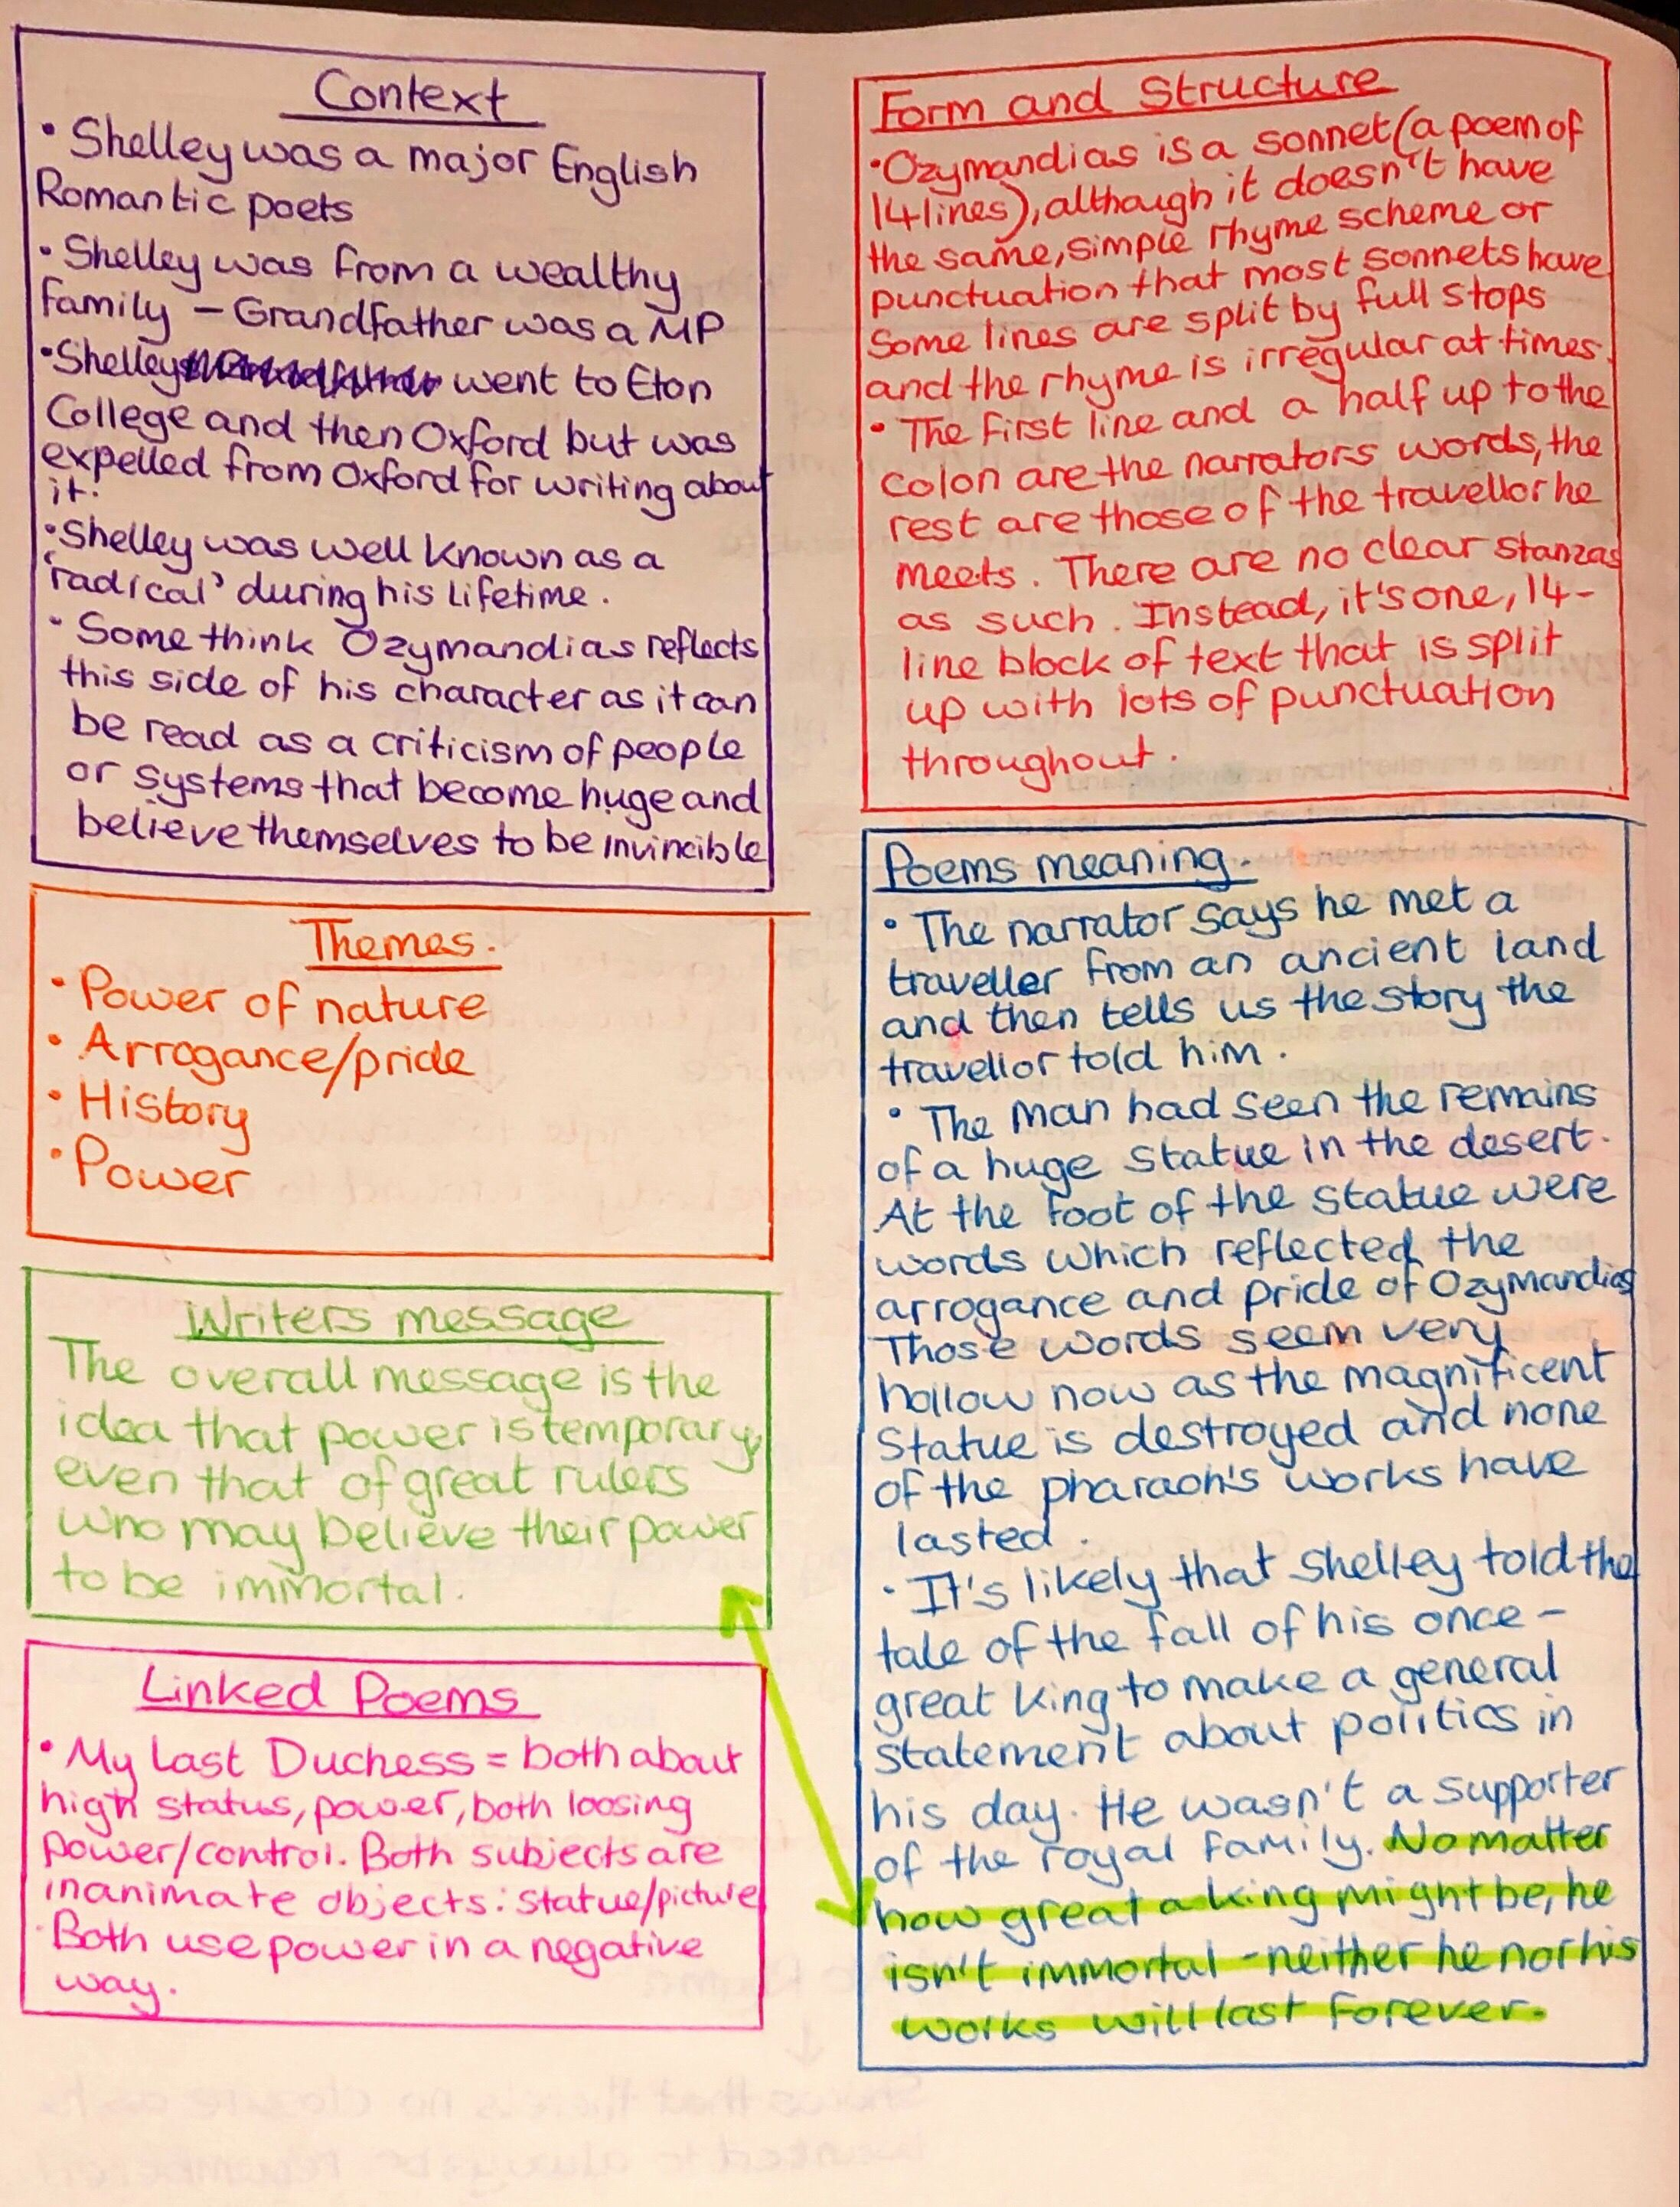 Ozymandia Revision Page Context Theme Writer Message Linked Poem Form And Structure Meani Gcse Analysi English Of The By Pb Shelley